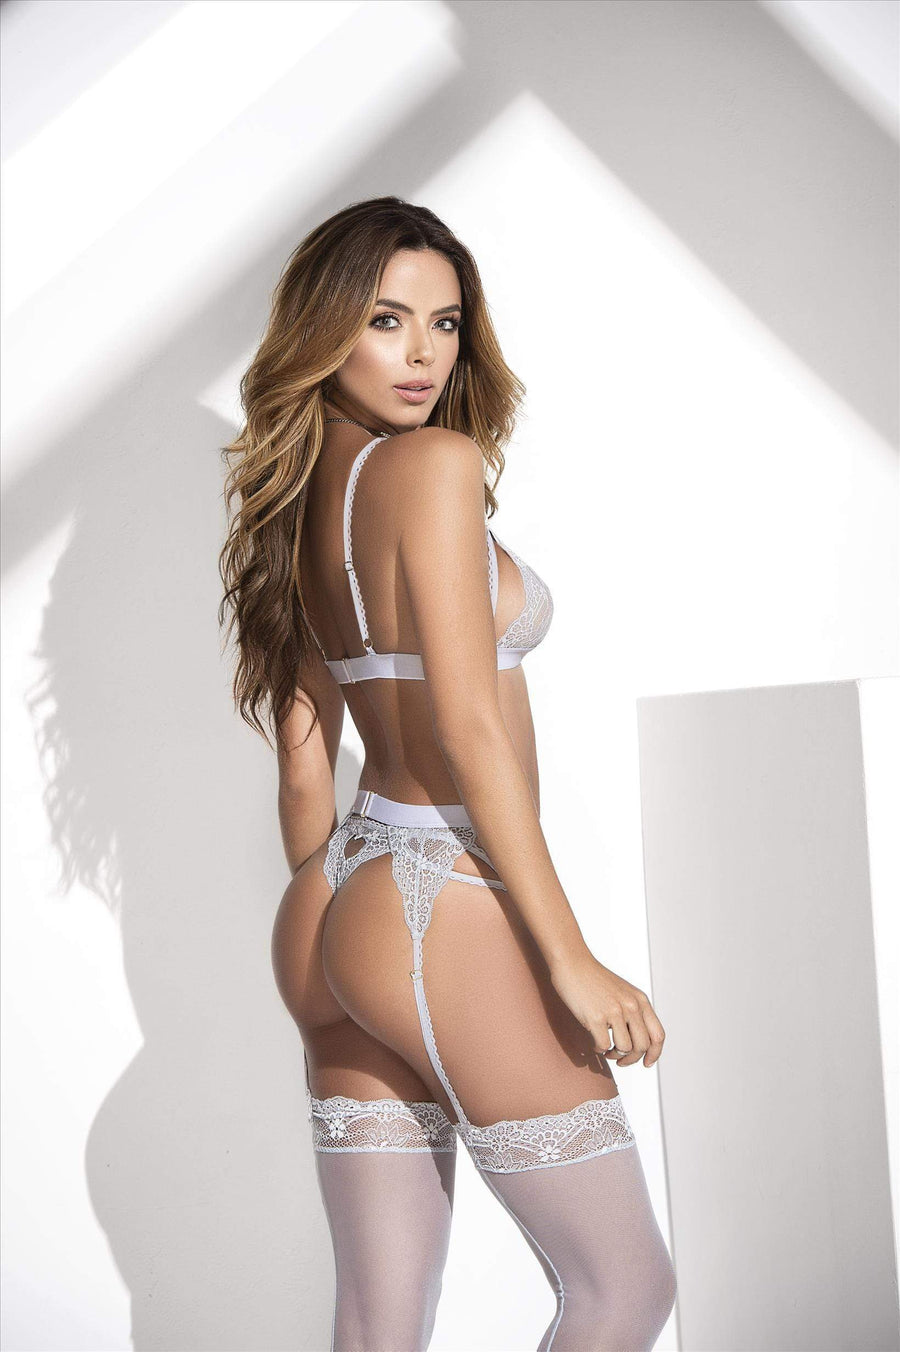 mapale Grey / S/M Grey Lace Bra, Thong, & Garter 3 Pc. Set (Many colors available) SHC-8221-GREY-S/M-MA Grey Lingerie Lace Set Bra Thong & Garter MAPALE 8221 | SHOP NOW | Apparel & Accessories > Clothing > Underwear & Socks > Lingerie